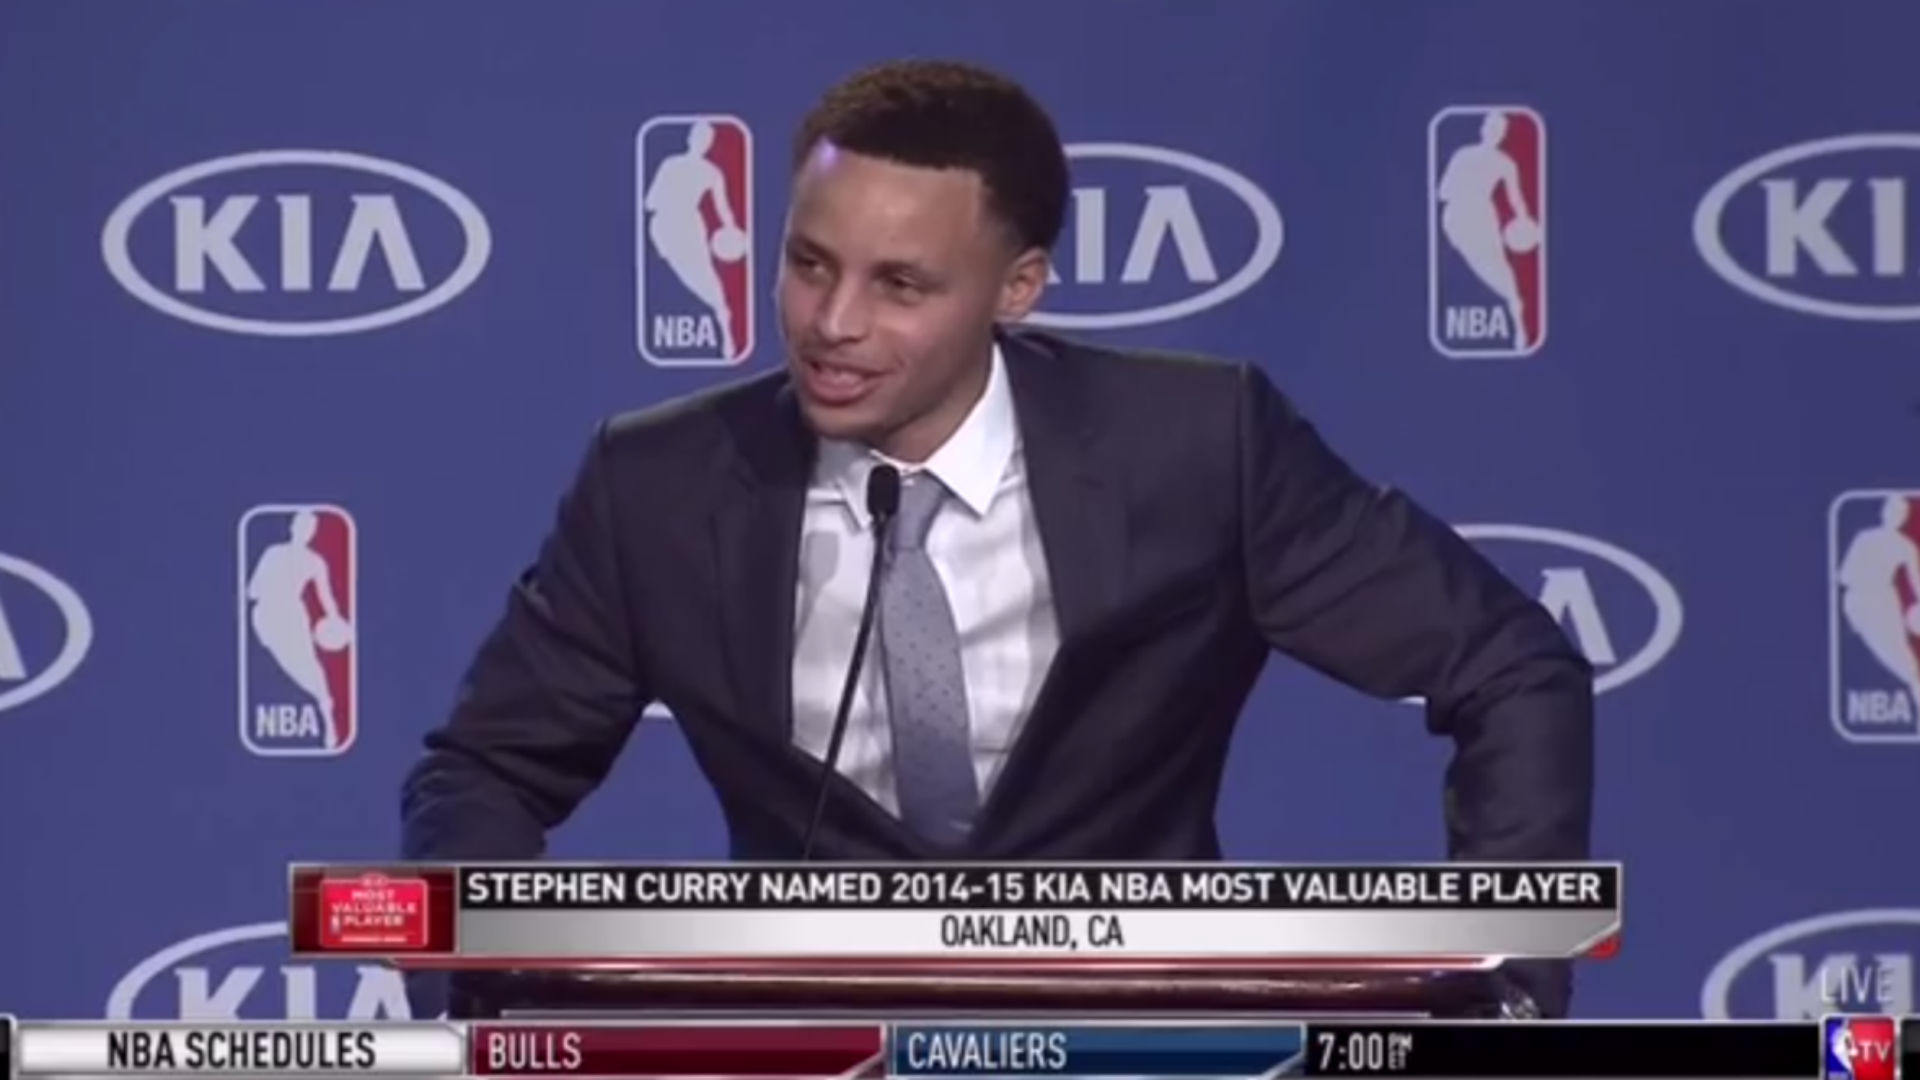 Stephen Curry shows MVP class in speech, with thanks from wife to equipment manager